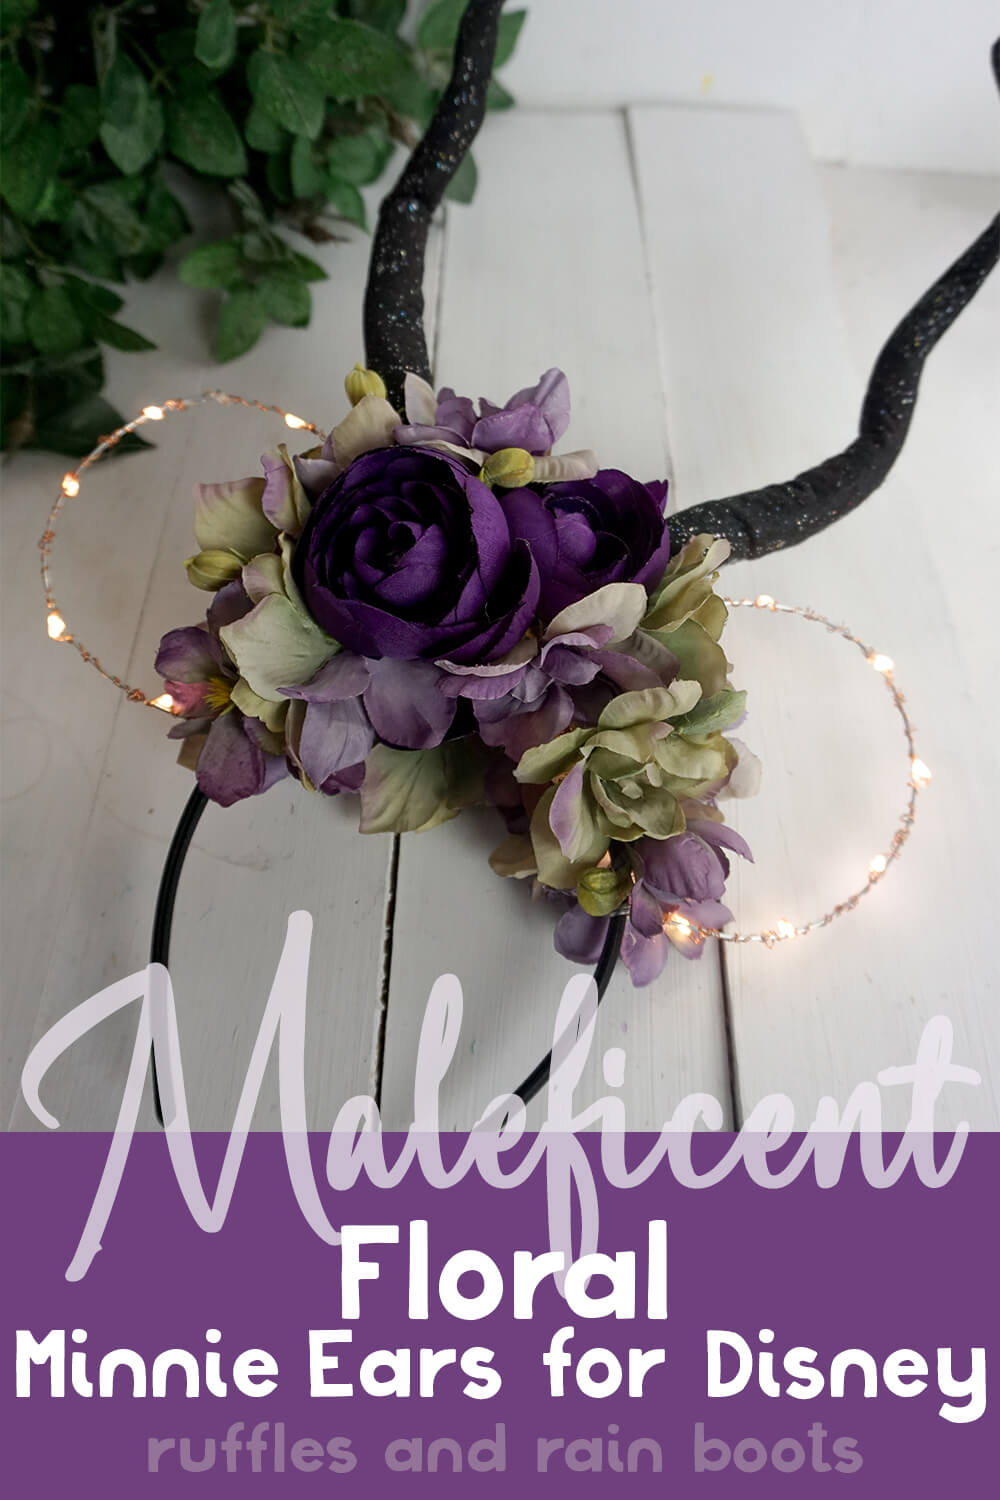 villain light-up mickey ears on a white wood background to represent make floral maleficent disney ears with text which reads maleficent floral minnie ears for disney